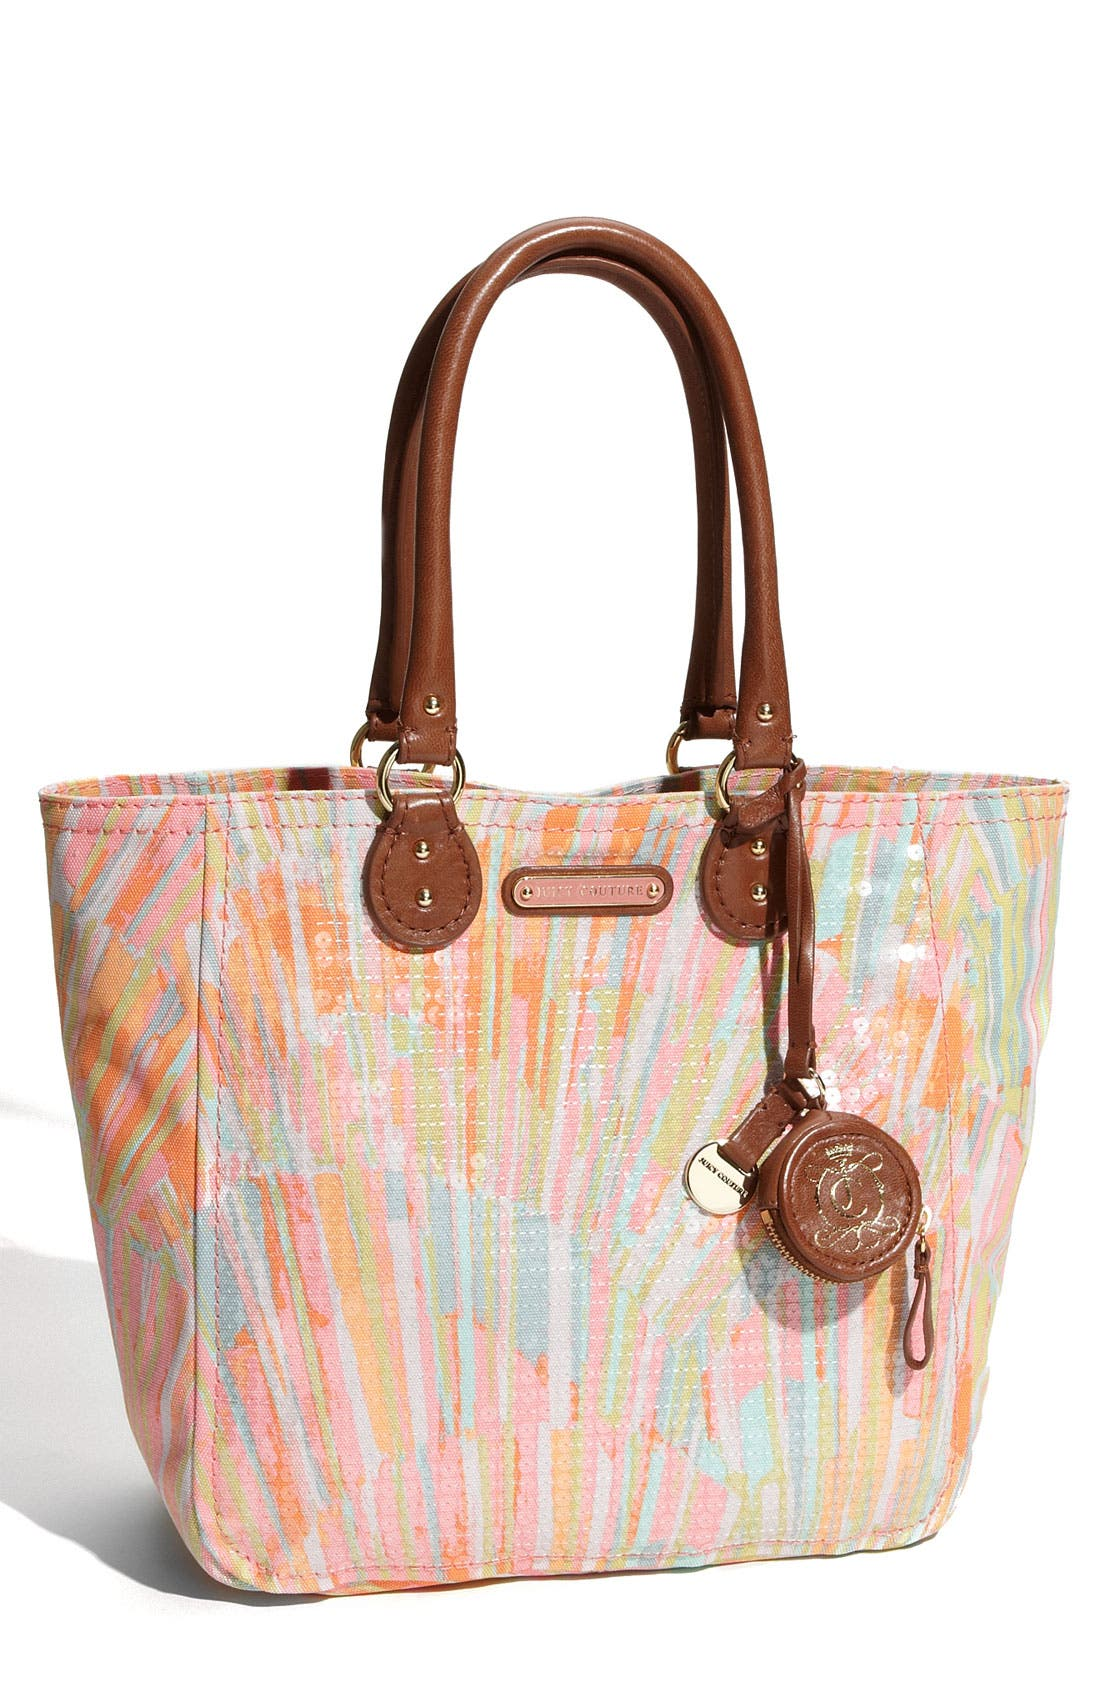 Alternate Image 1 Selected - Juicy Couture 'Sunburst Sequins - Small' Tote